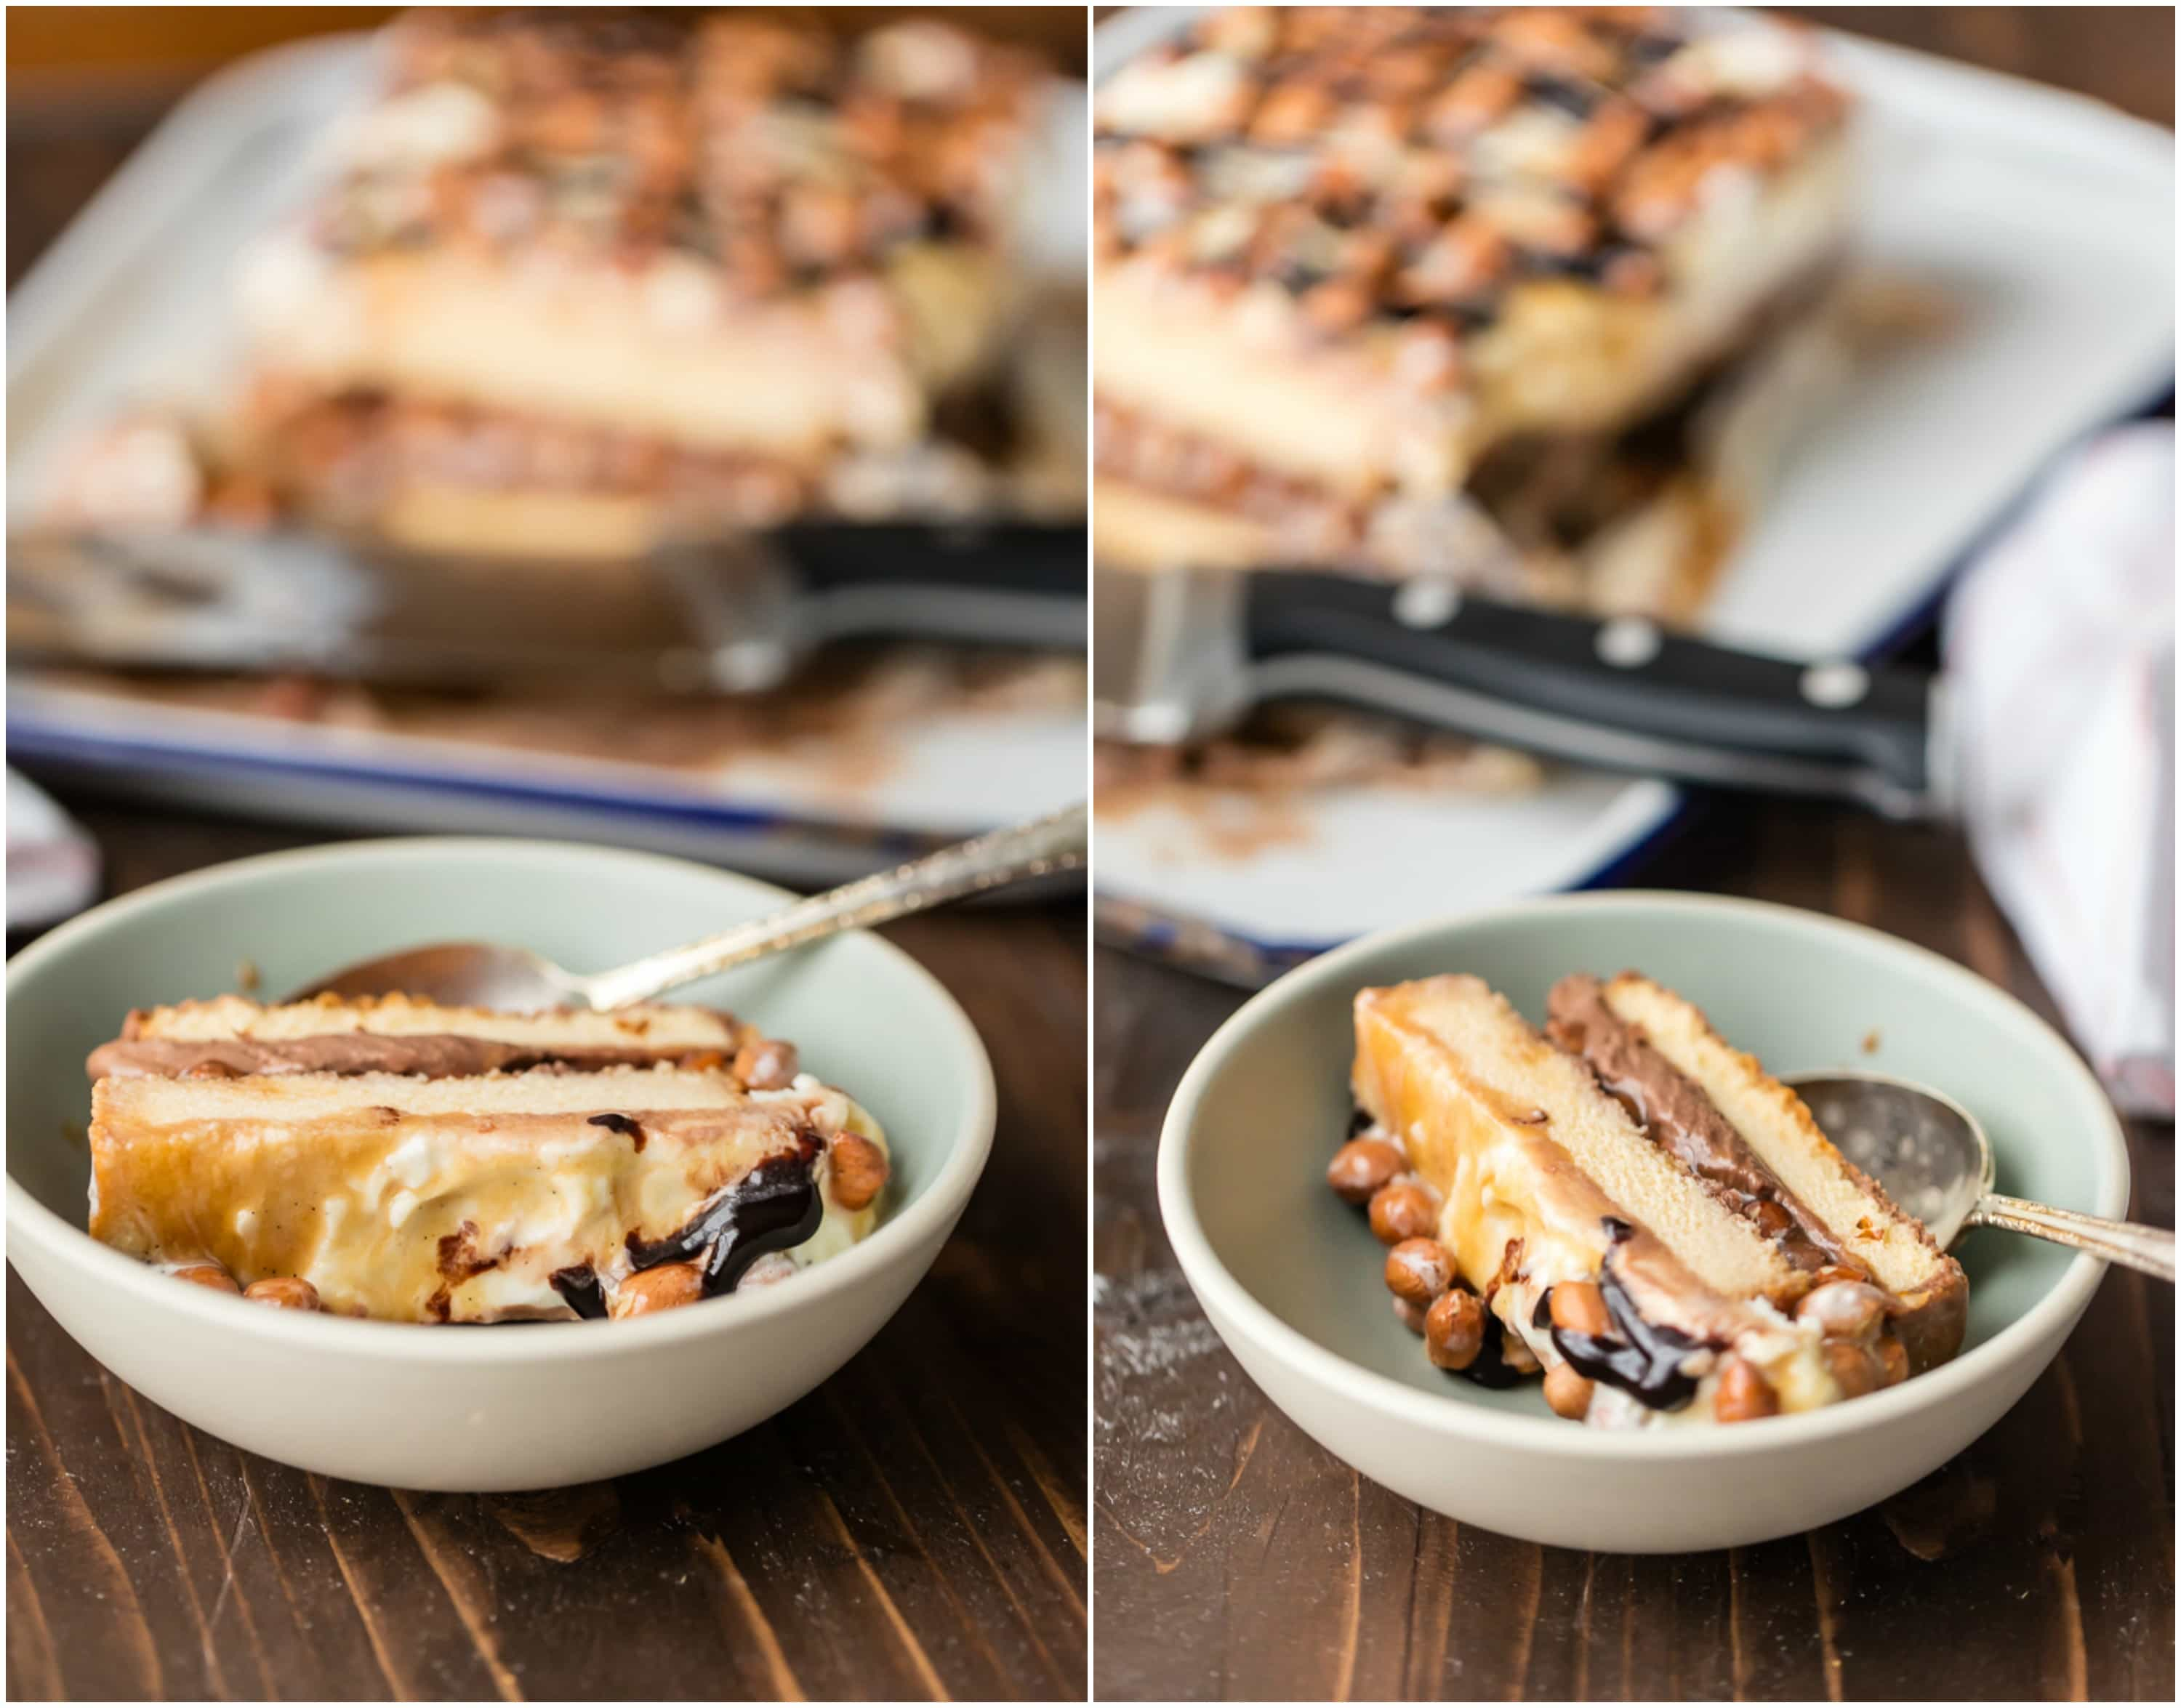 Be the hero of any party with this LAZY GIRL'S SNICKERS ICE CREAM CAKE! Made with pound cake, chocolate and vanilla ice cream, caramel, and peanuts. BEST EASY ICE CREAM CAKE EVER!